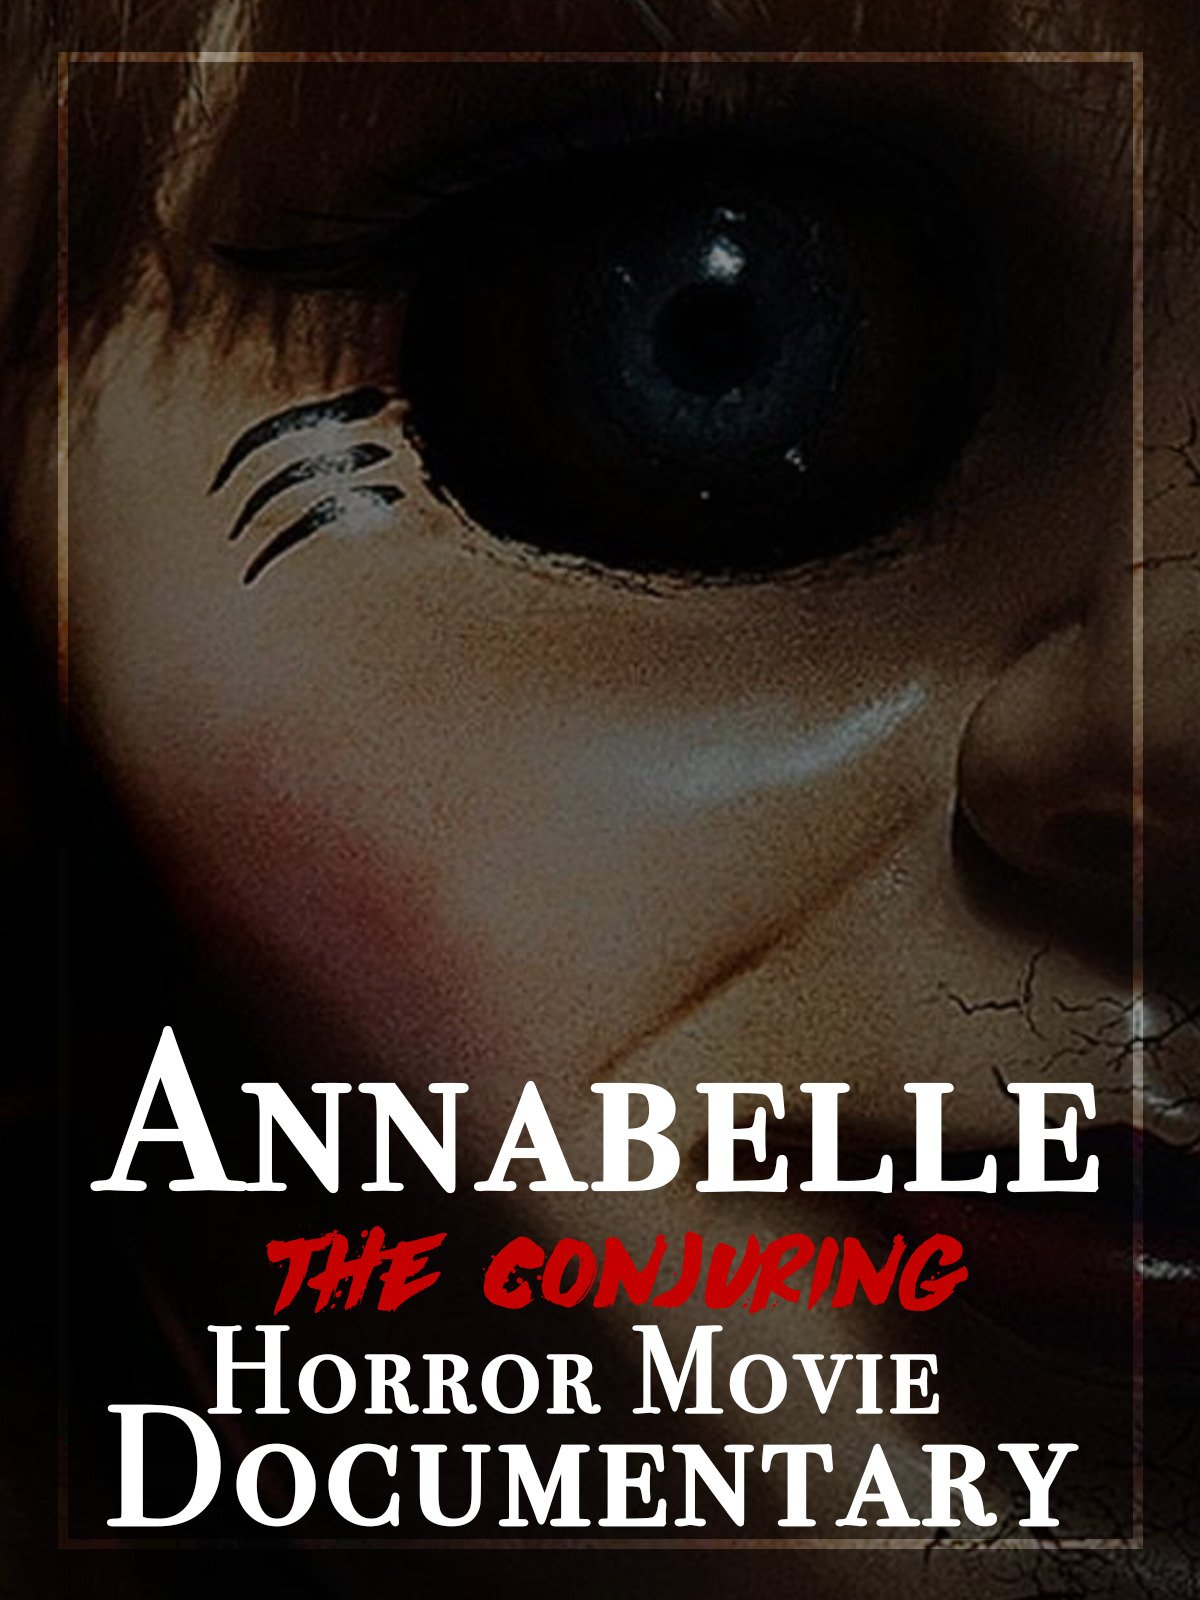 Annabelle The Conjuring Horror Movie Documentary on Amazon Prime Video UK